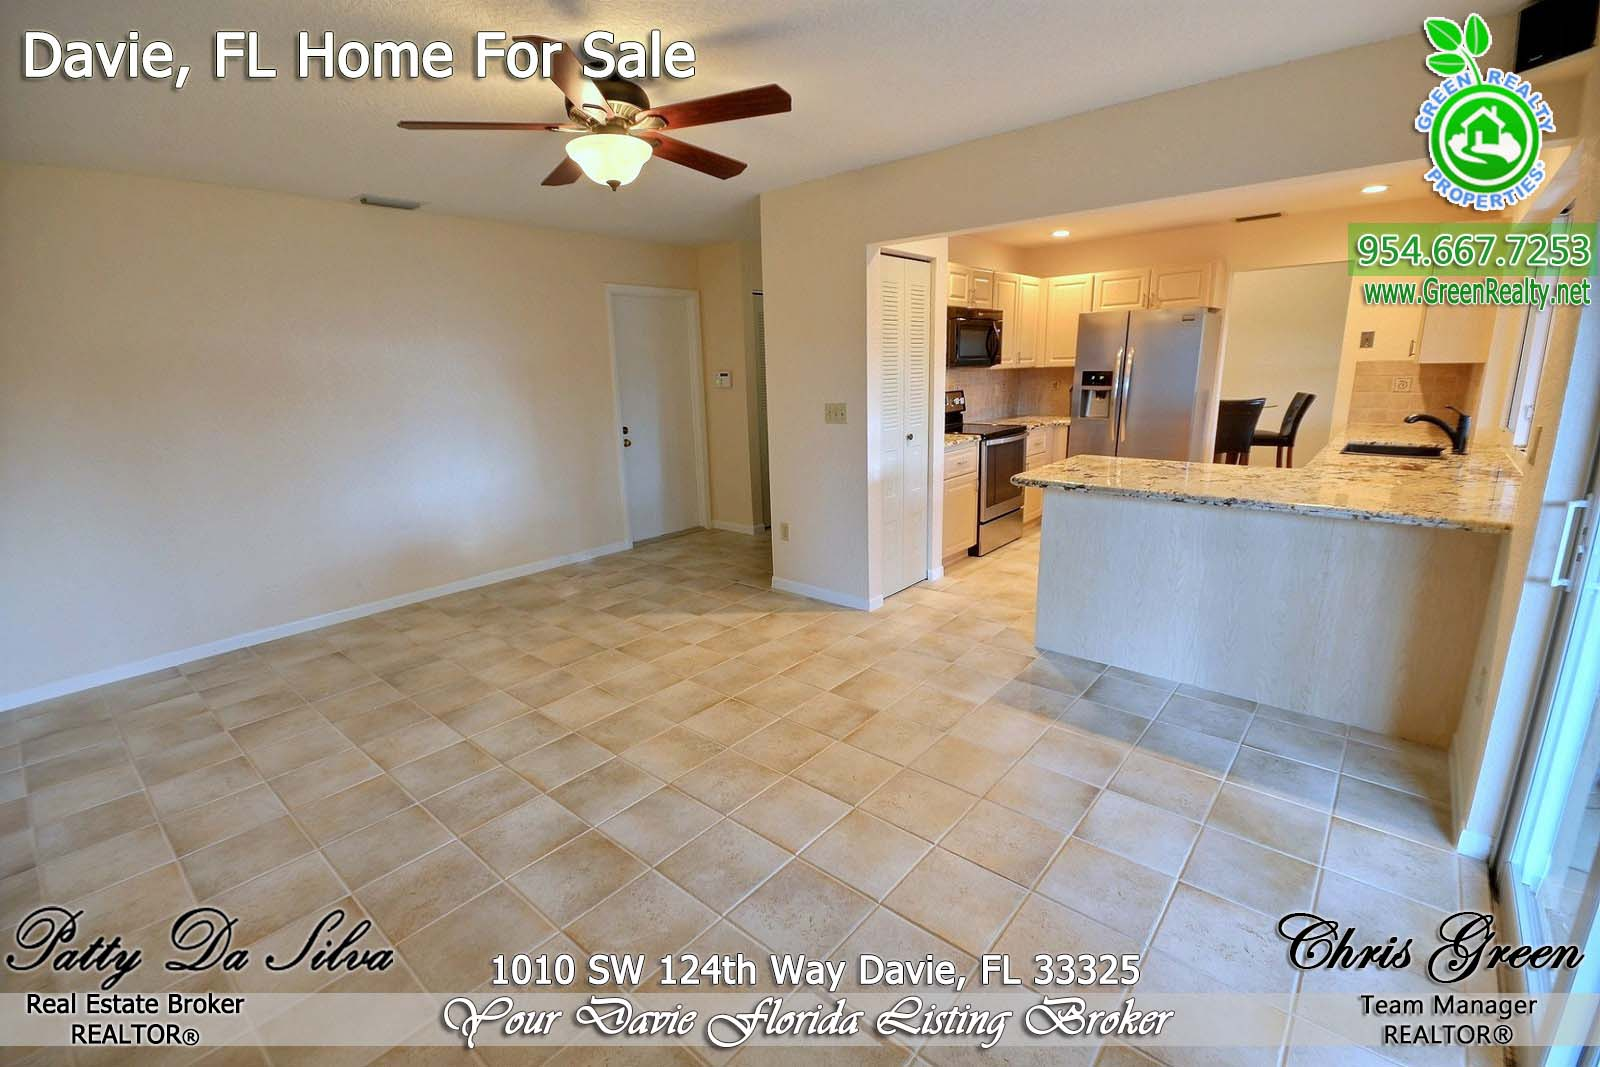 18 Davie Homes For Sale (2)